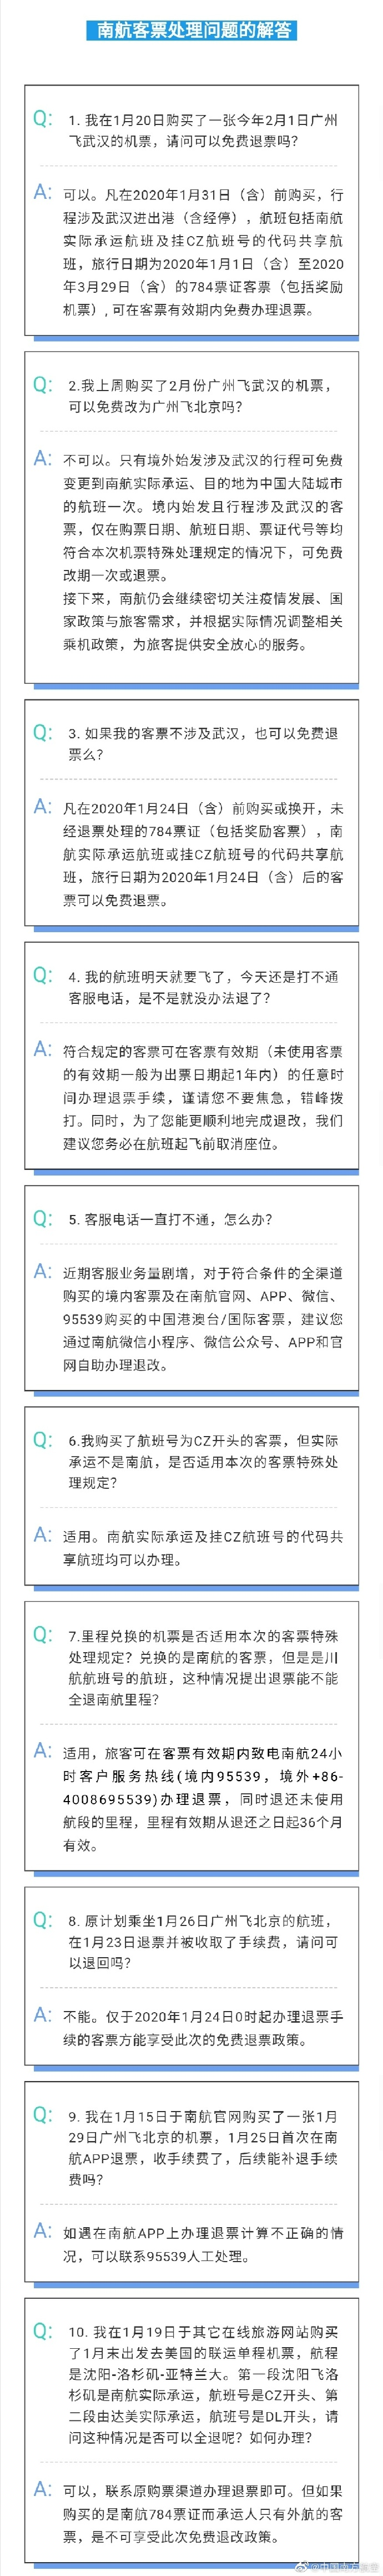 china-southern-airlines-travel-waiver-2020.jpg